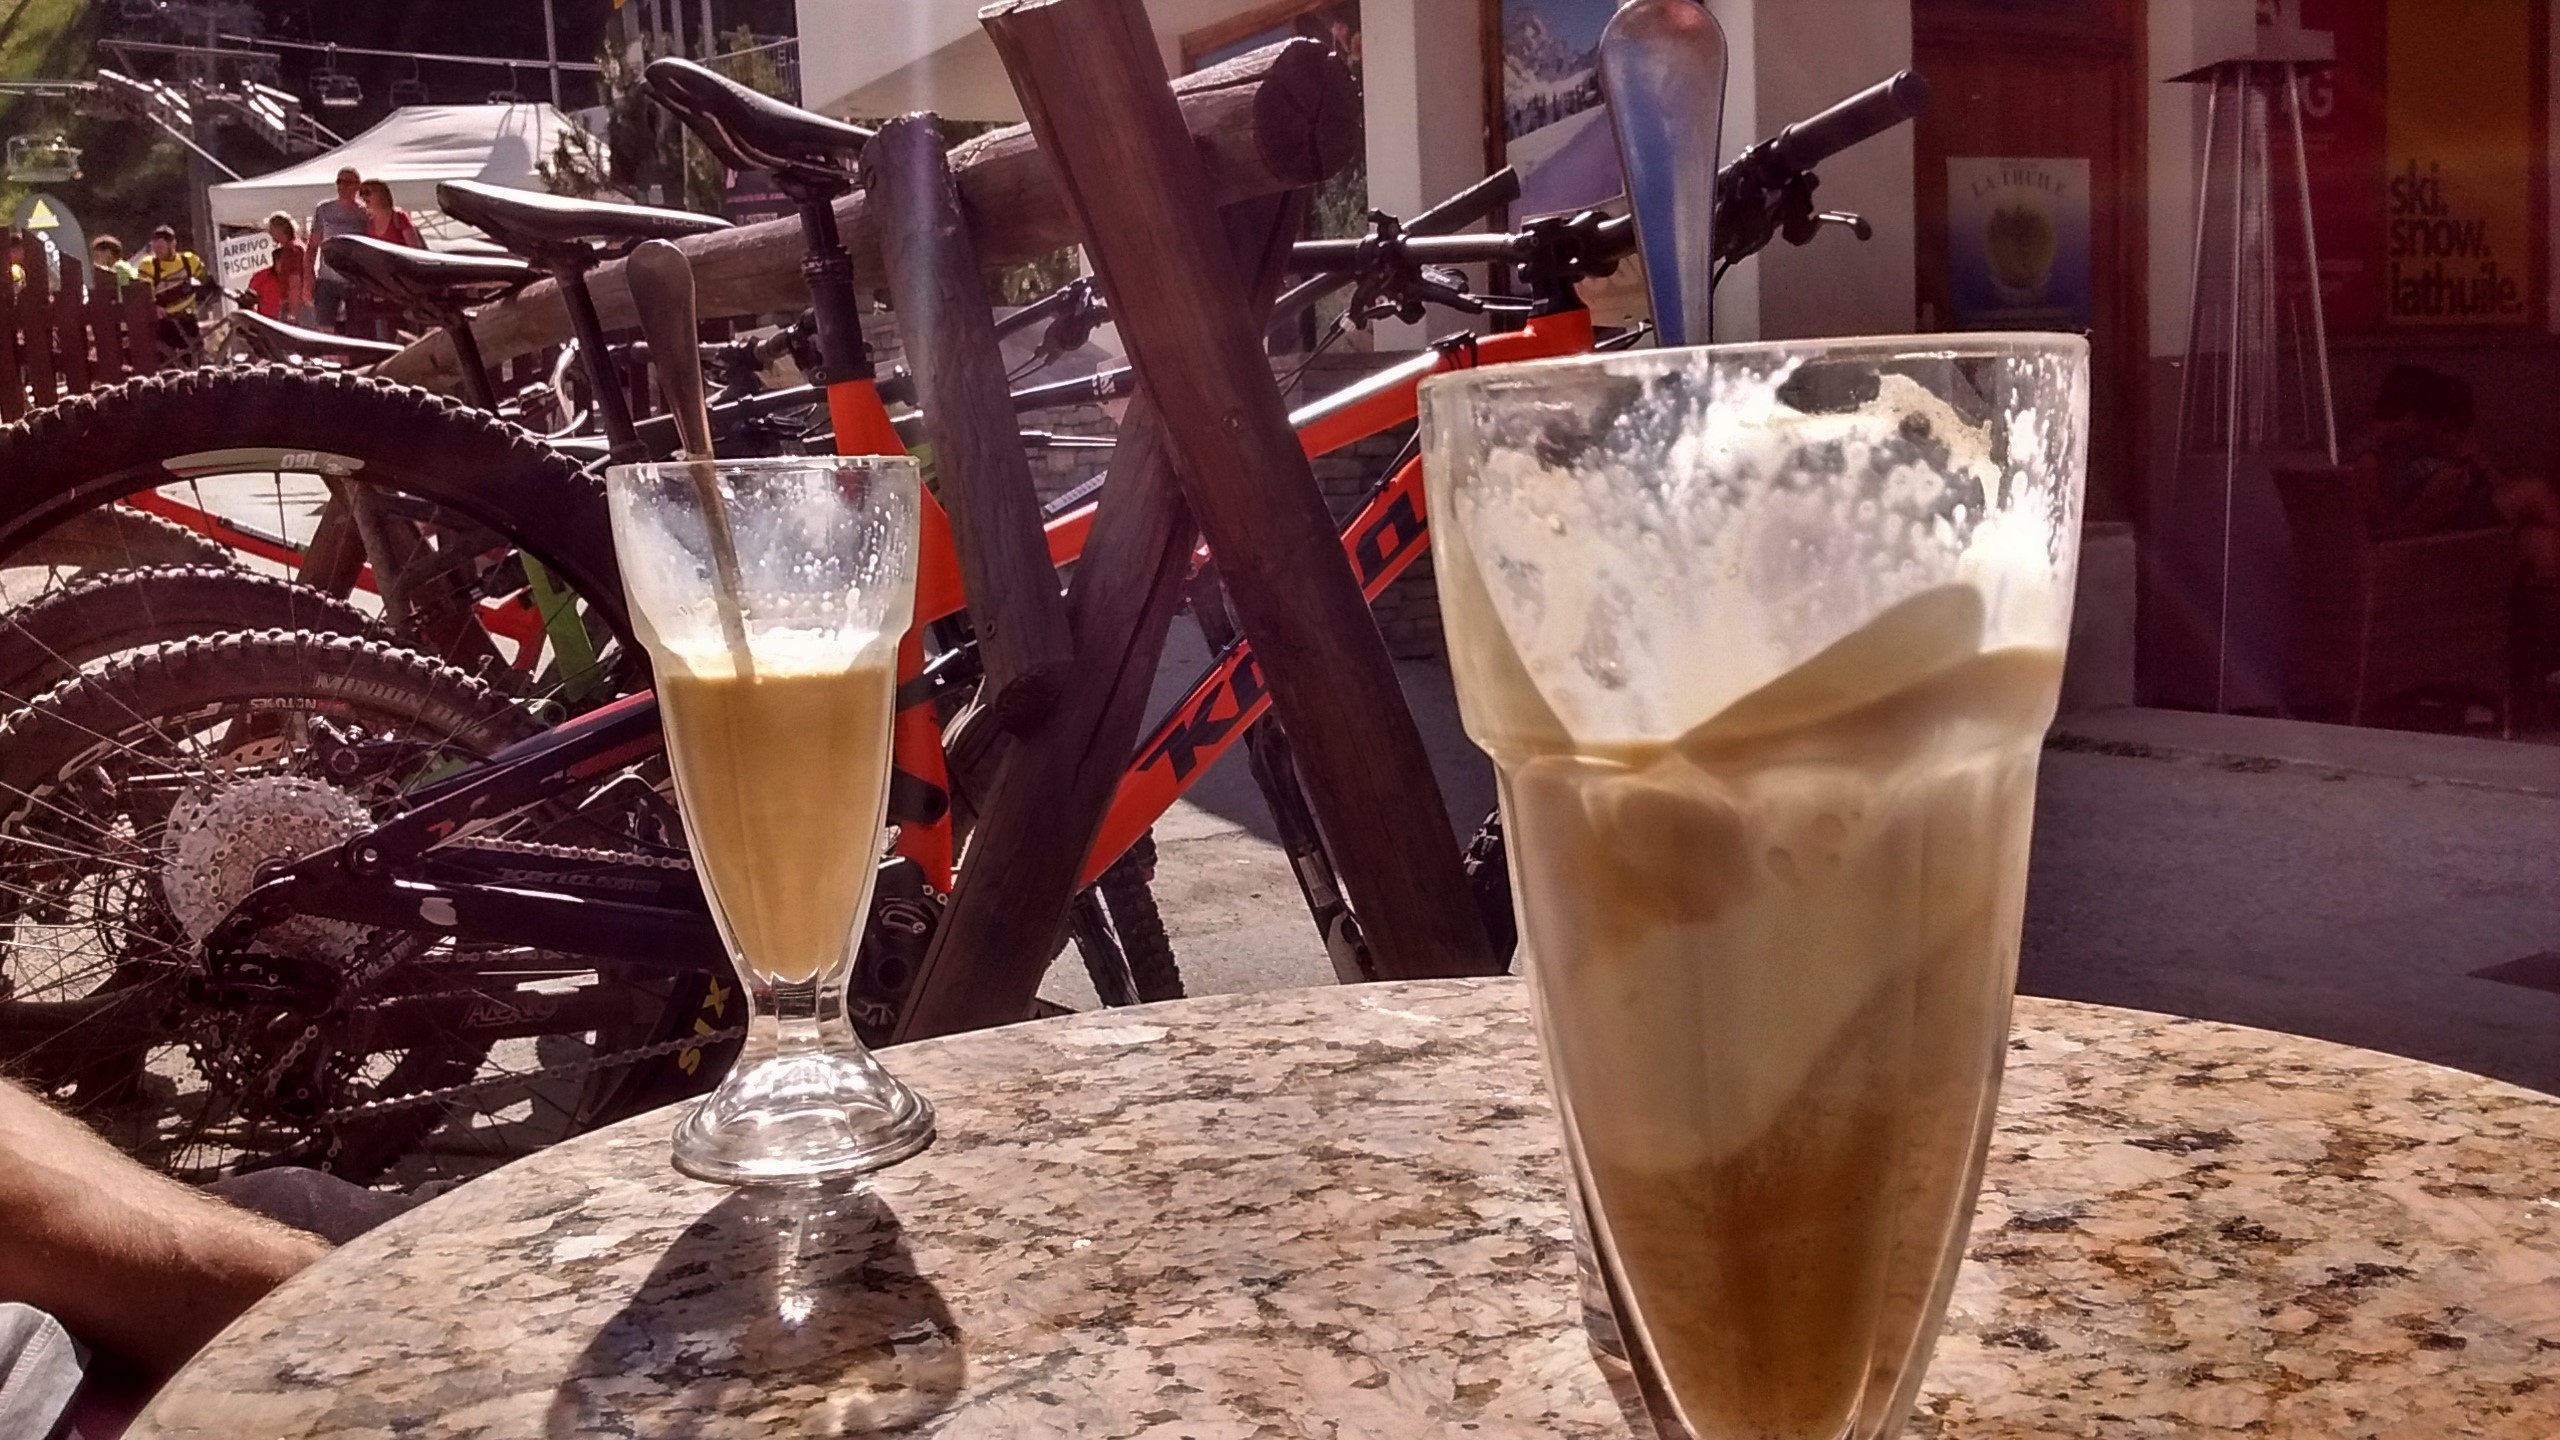 Post race affogato. It is Italy after all.